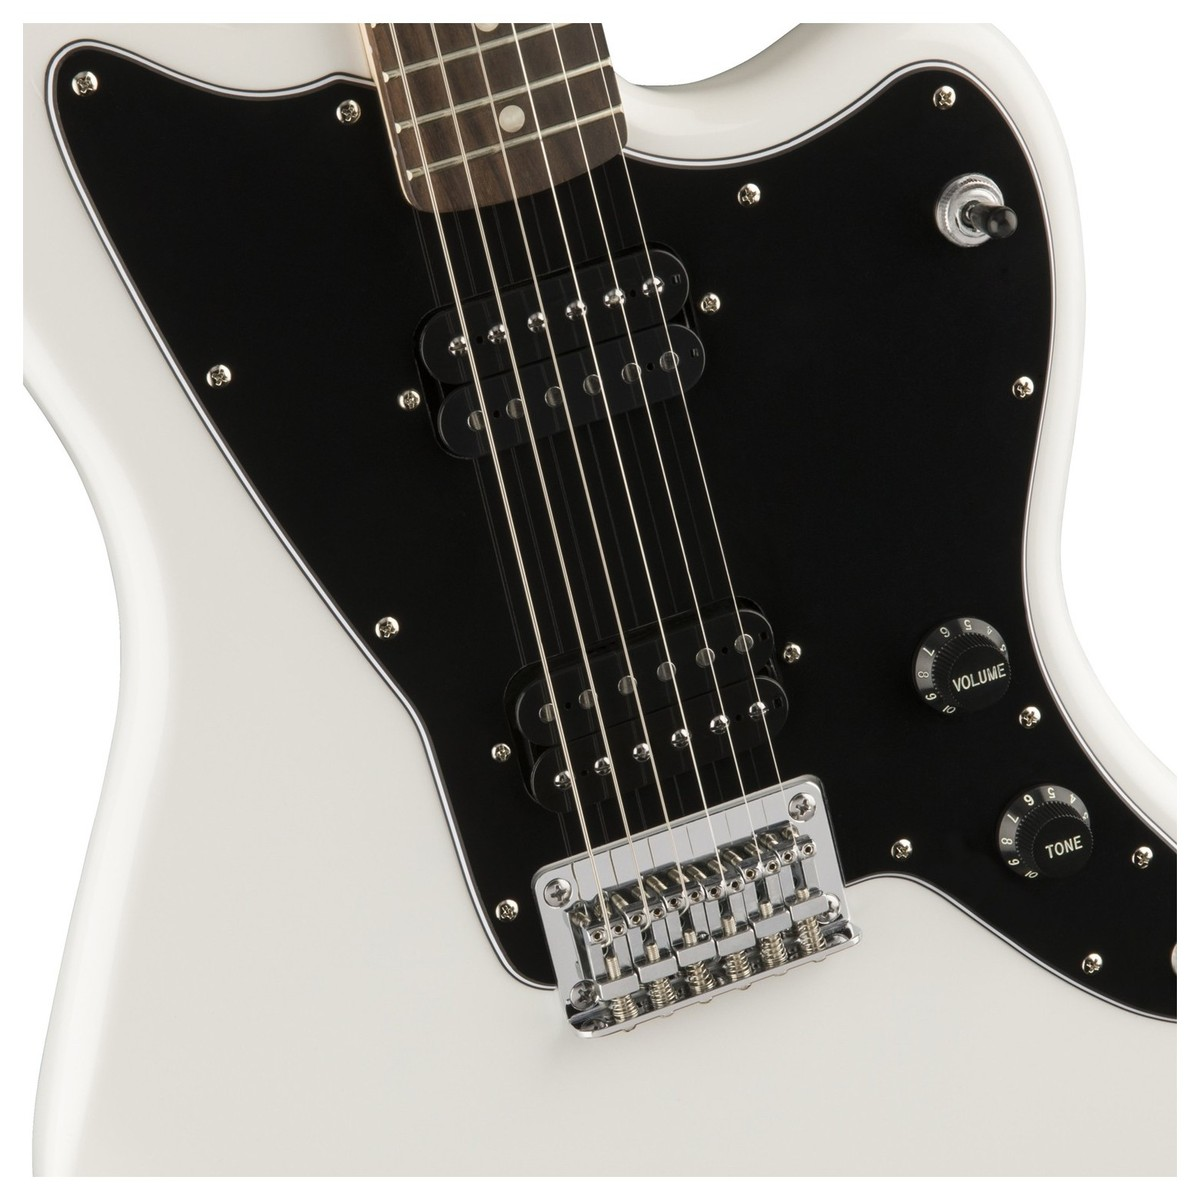 squier by fender affinity jazzmaster hh electric guitar arctic white at. Black Bedroom Furniture Sets. Home Design Ideas